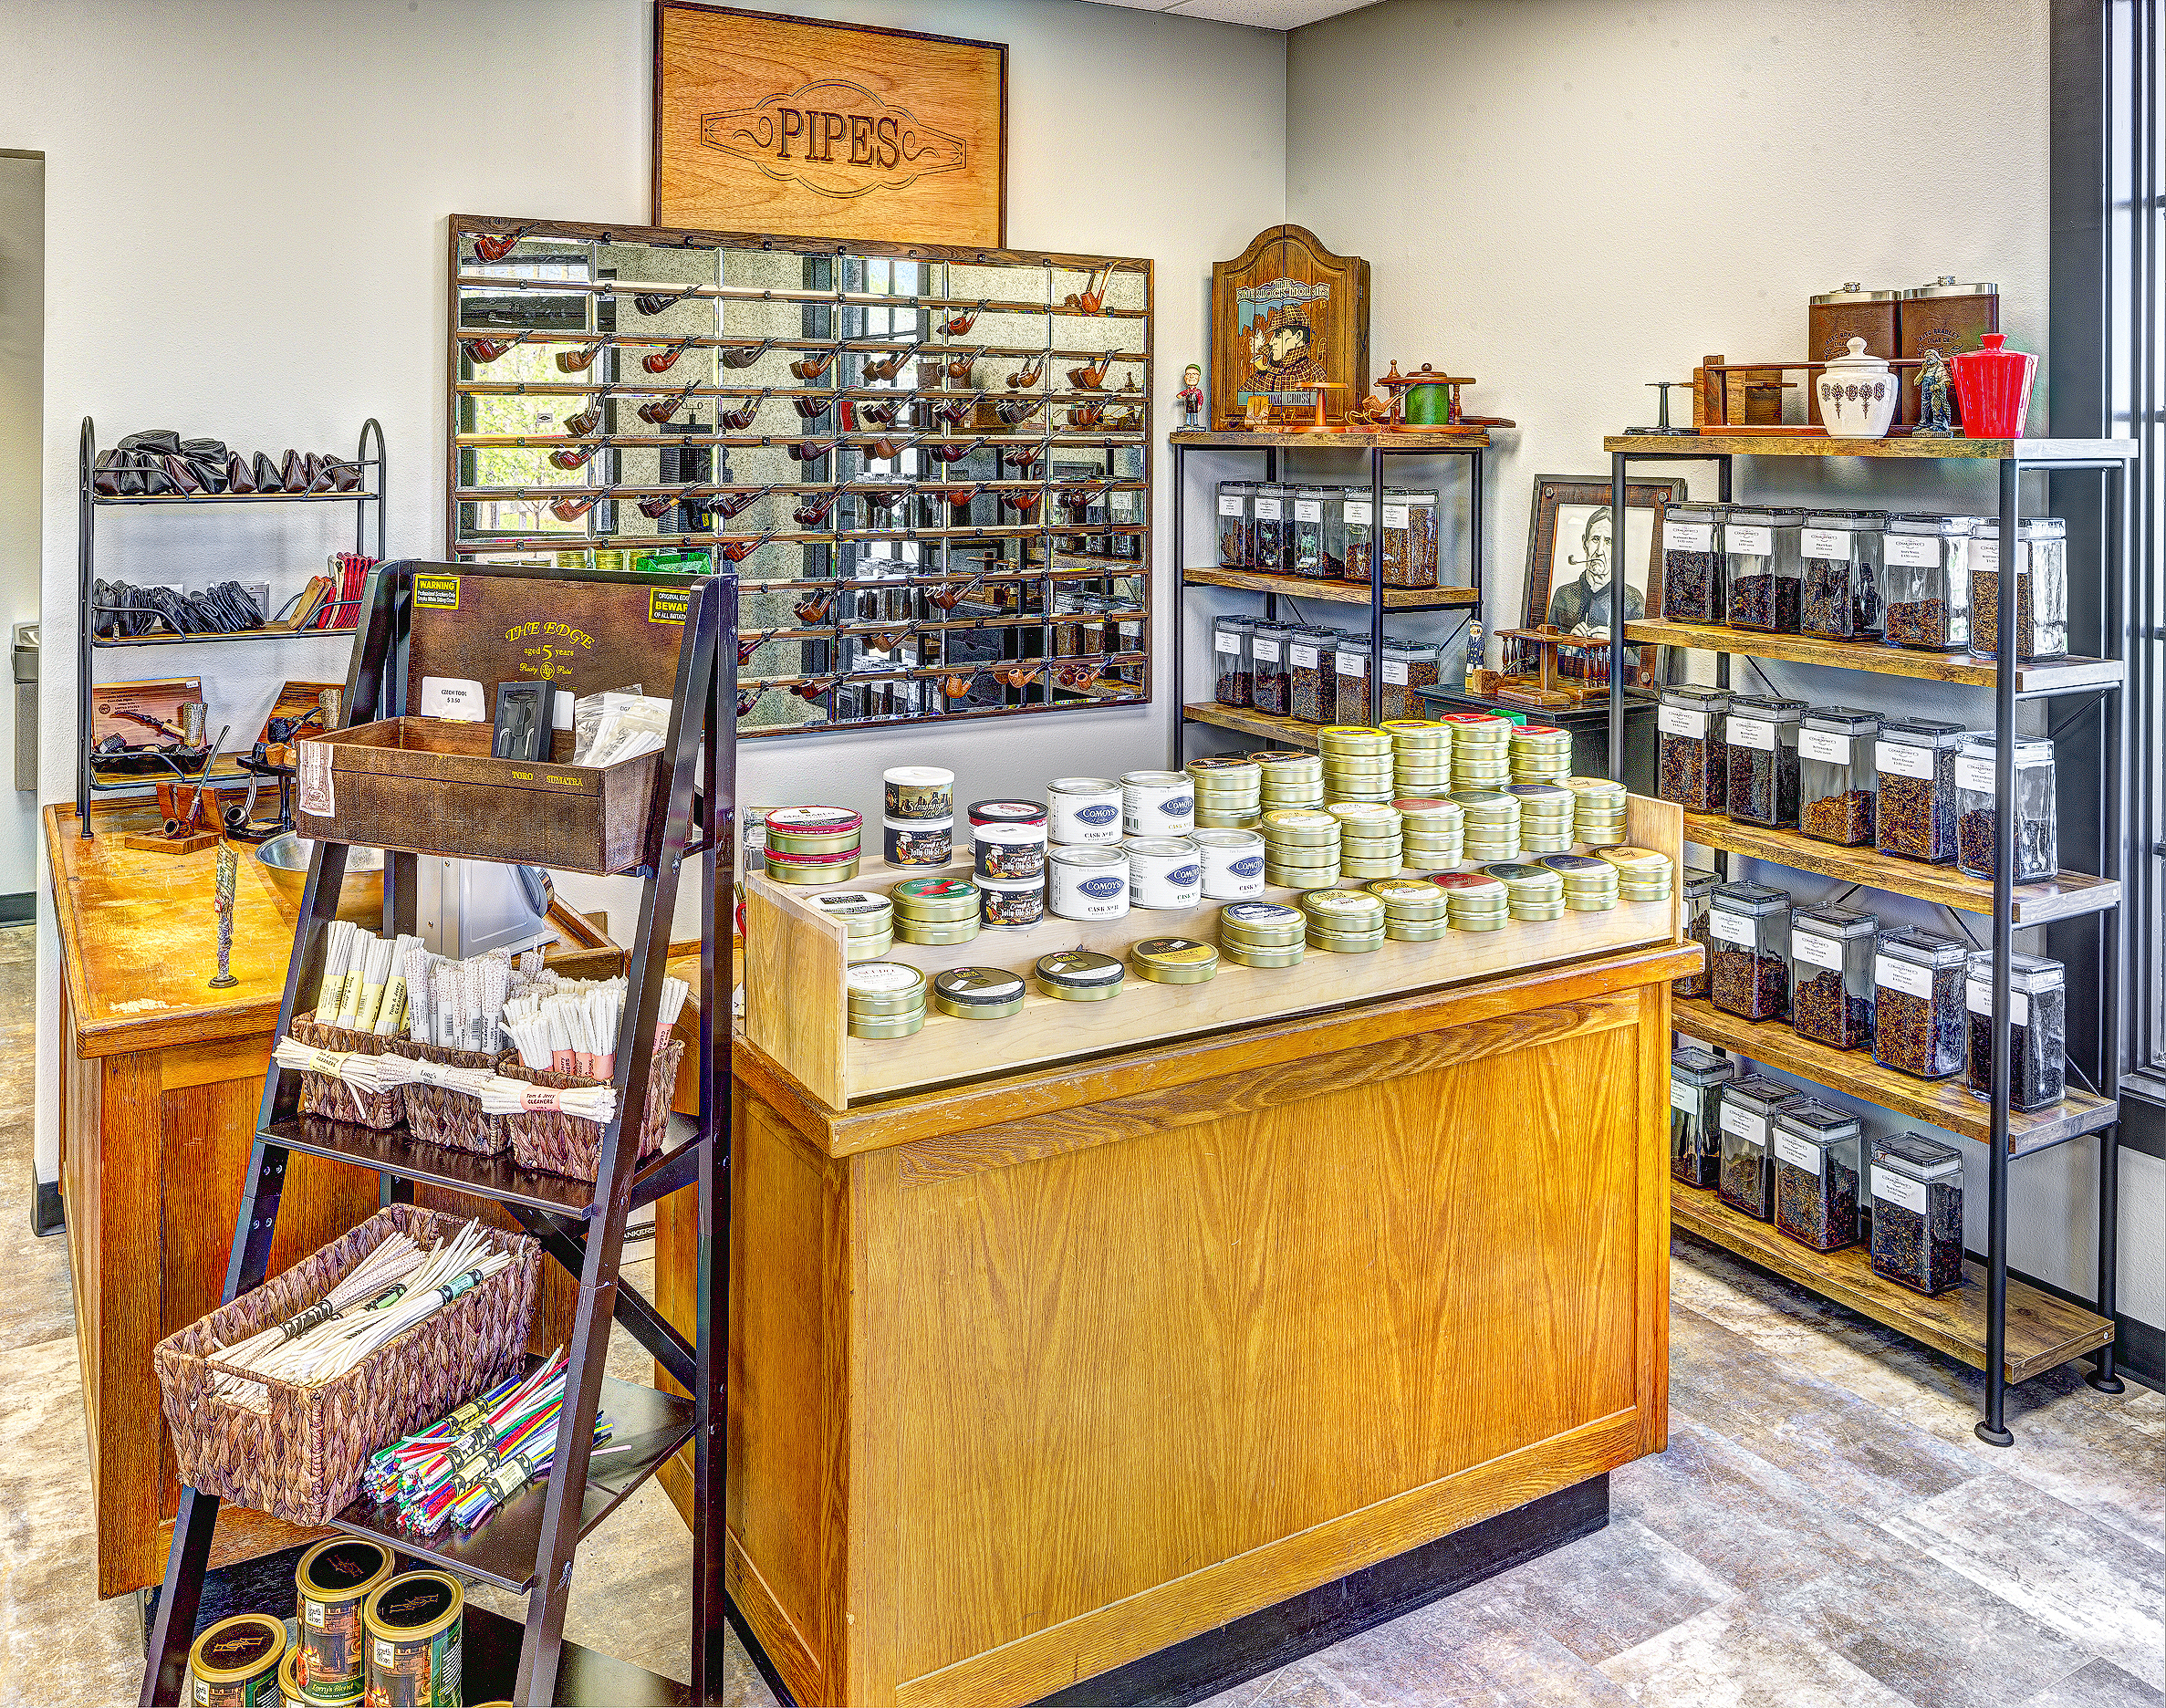 Pipes & Tobacco -